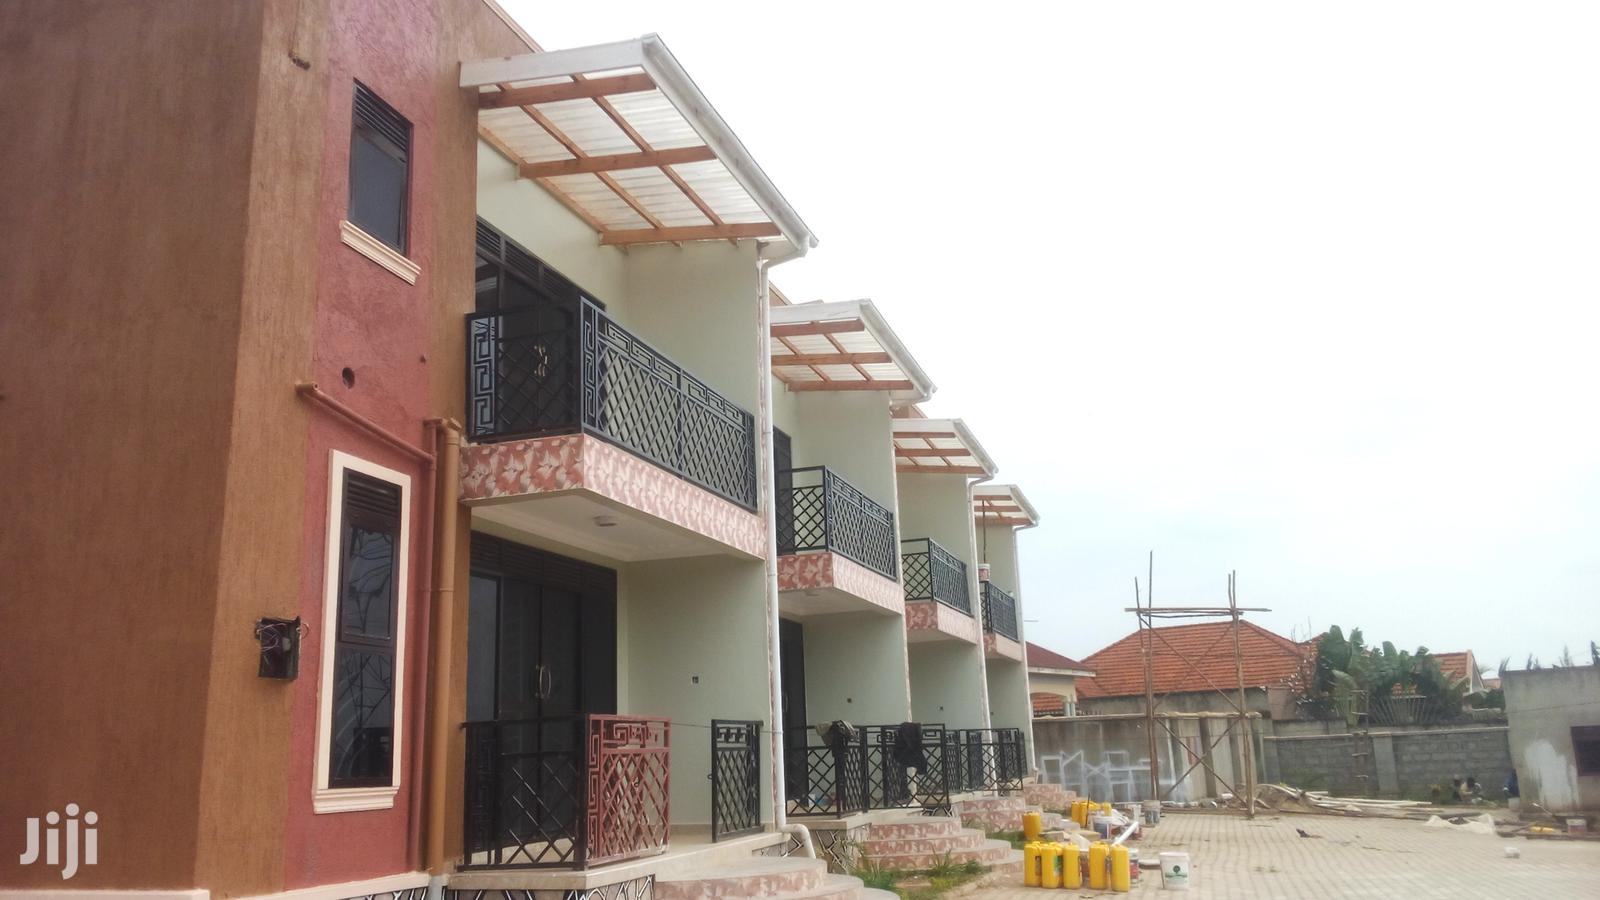 3 Bedroom Duplex House In Kisaasi Kyanja For Rent